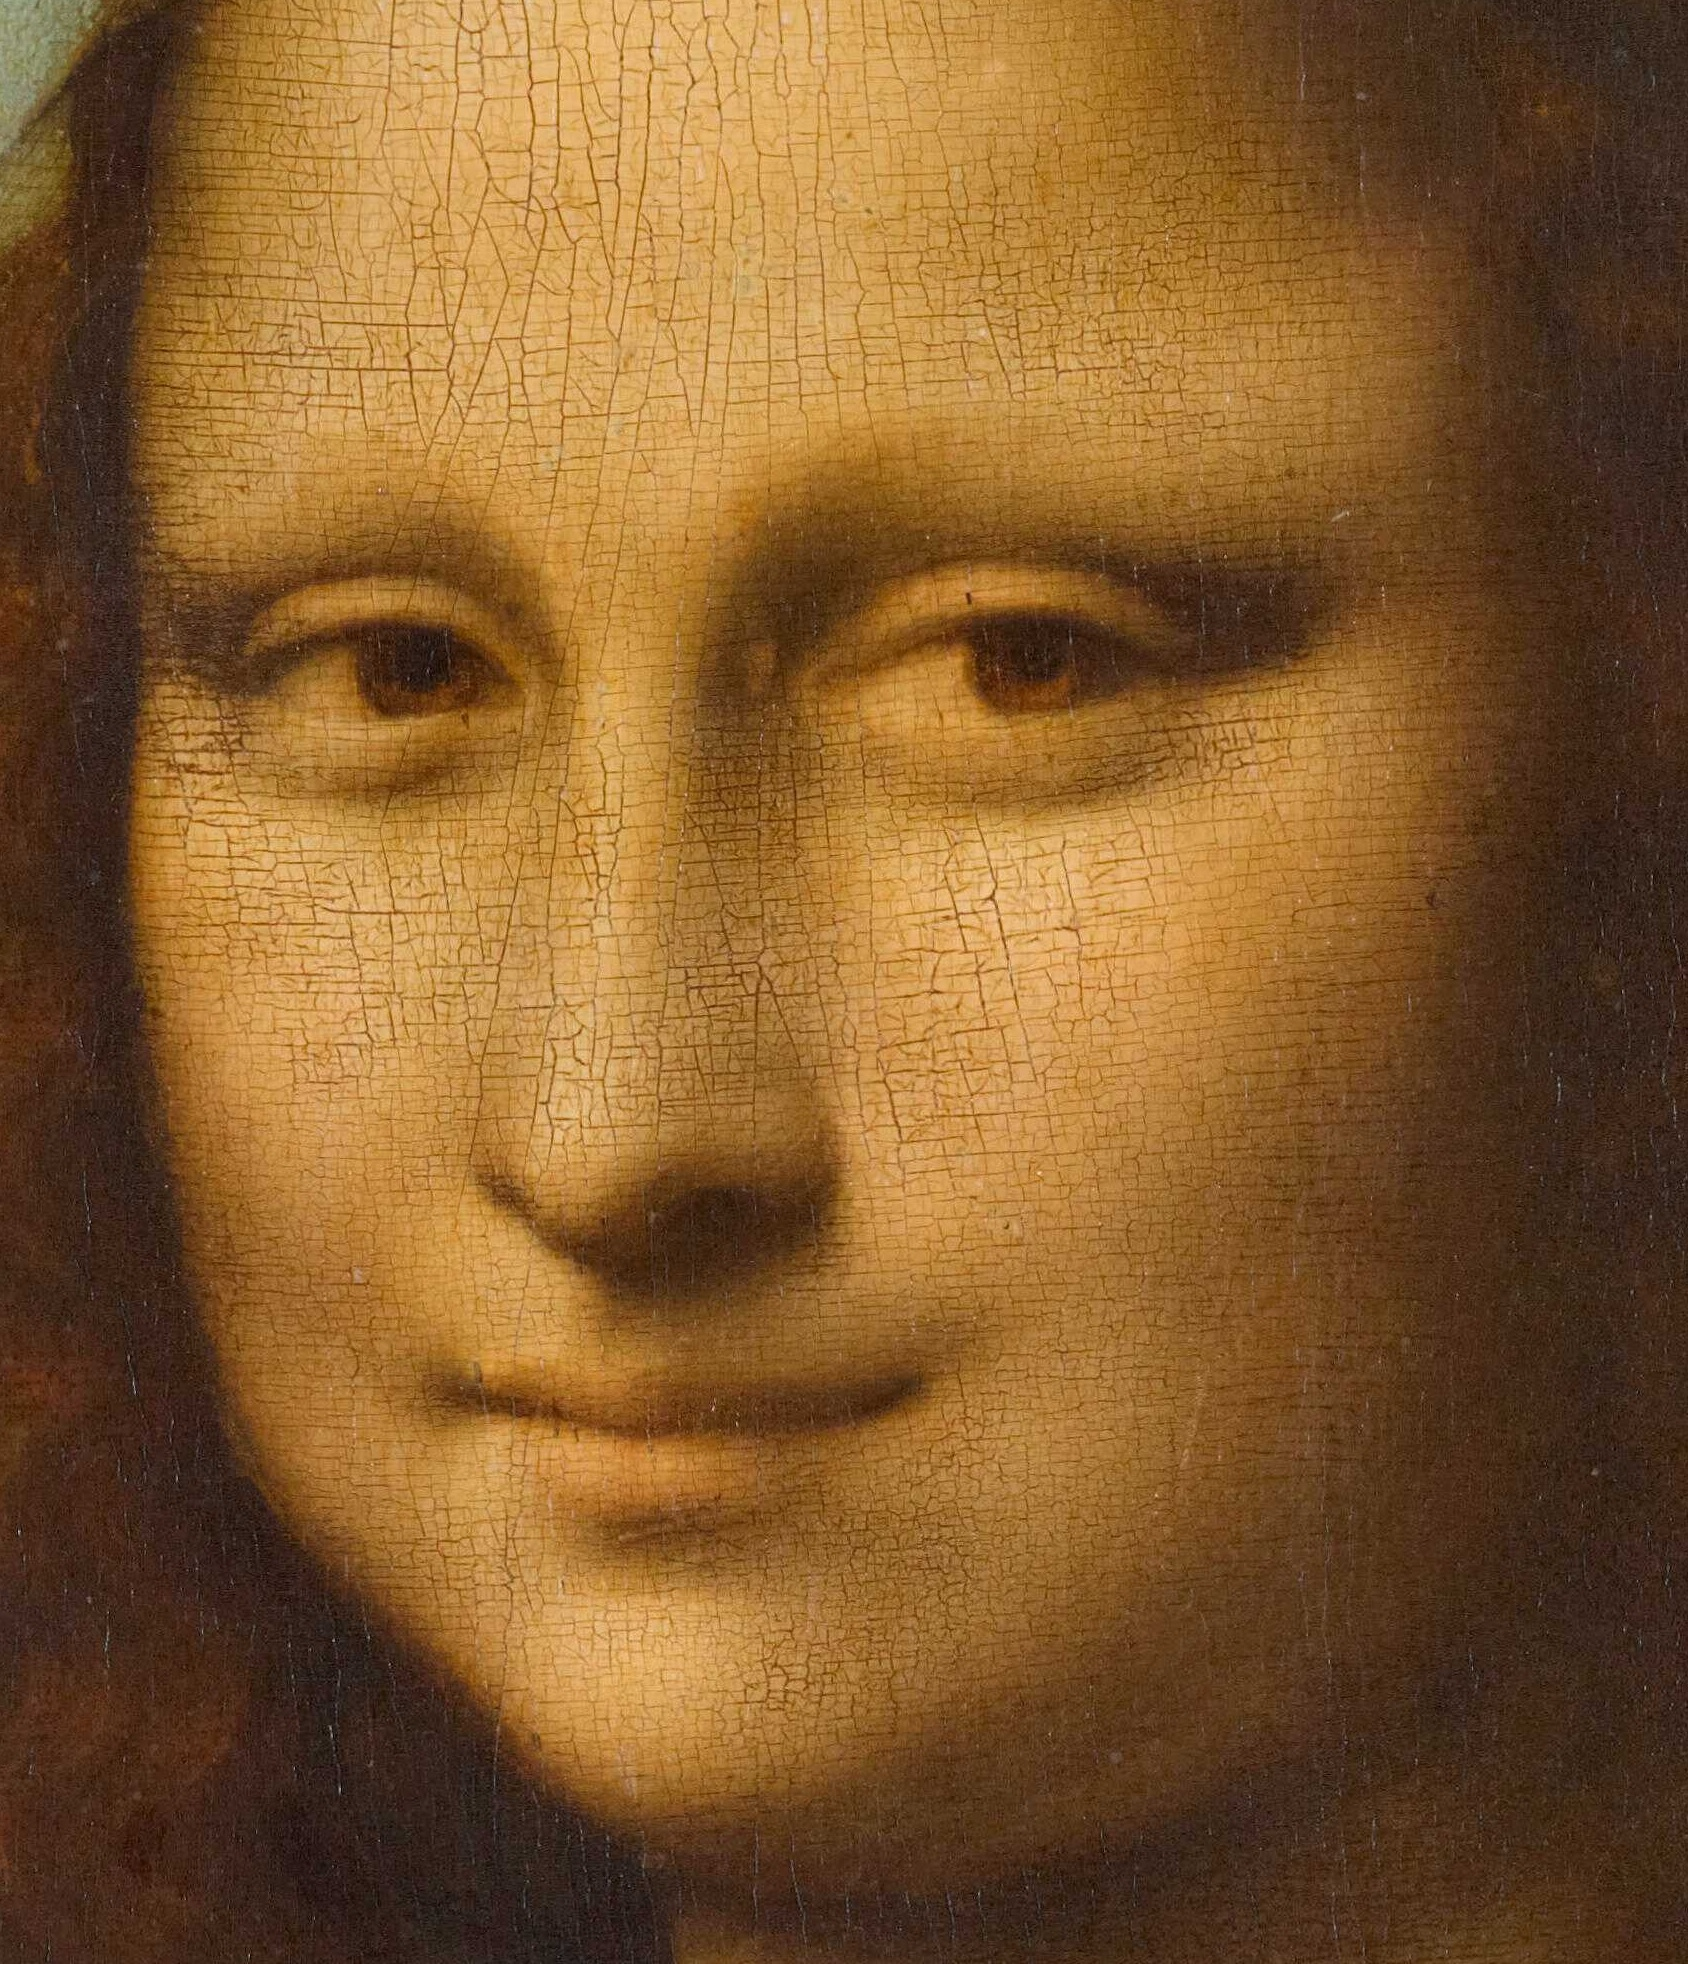 http://upload.wikimedia.org/wikipedia/commons/5/5f/MonaLisa_sfumato.jpeg